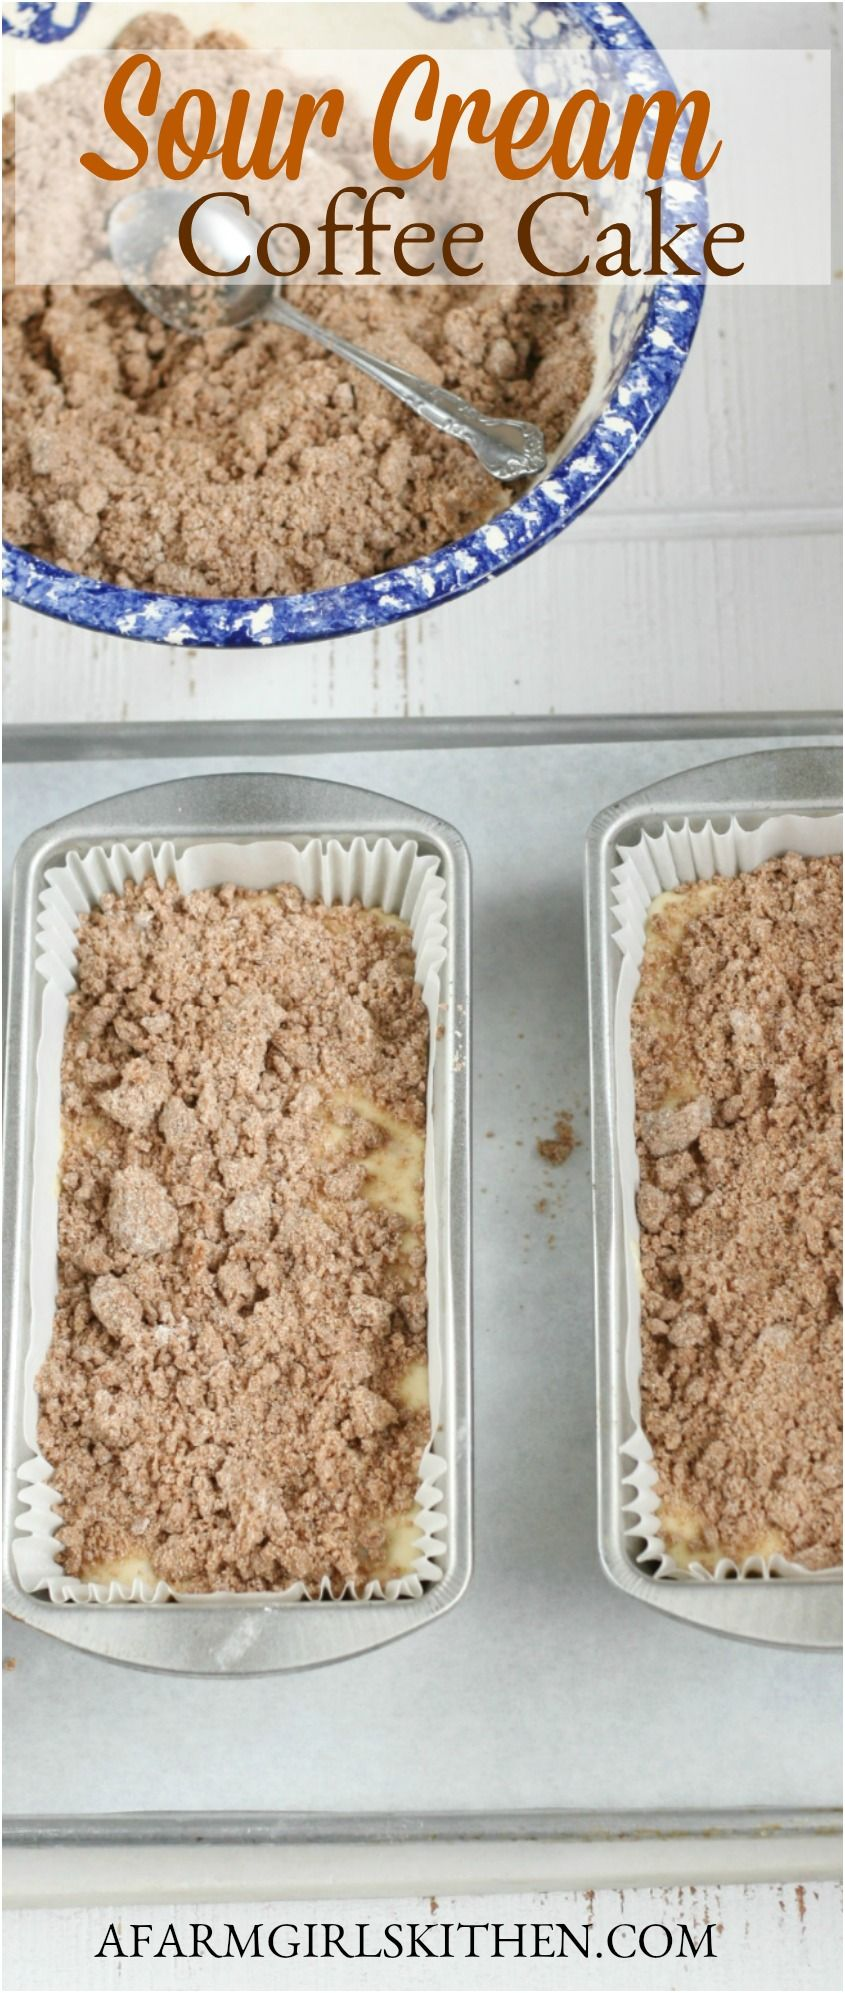 Sour Cream Coffee Cake with Crumb Topping (made with